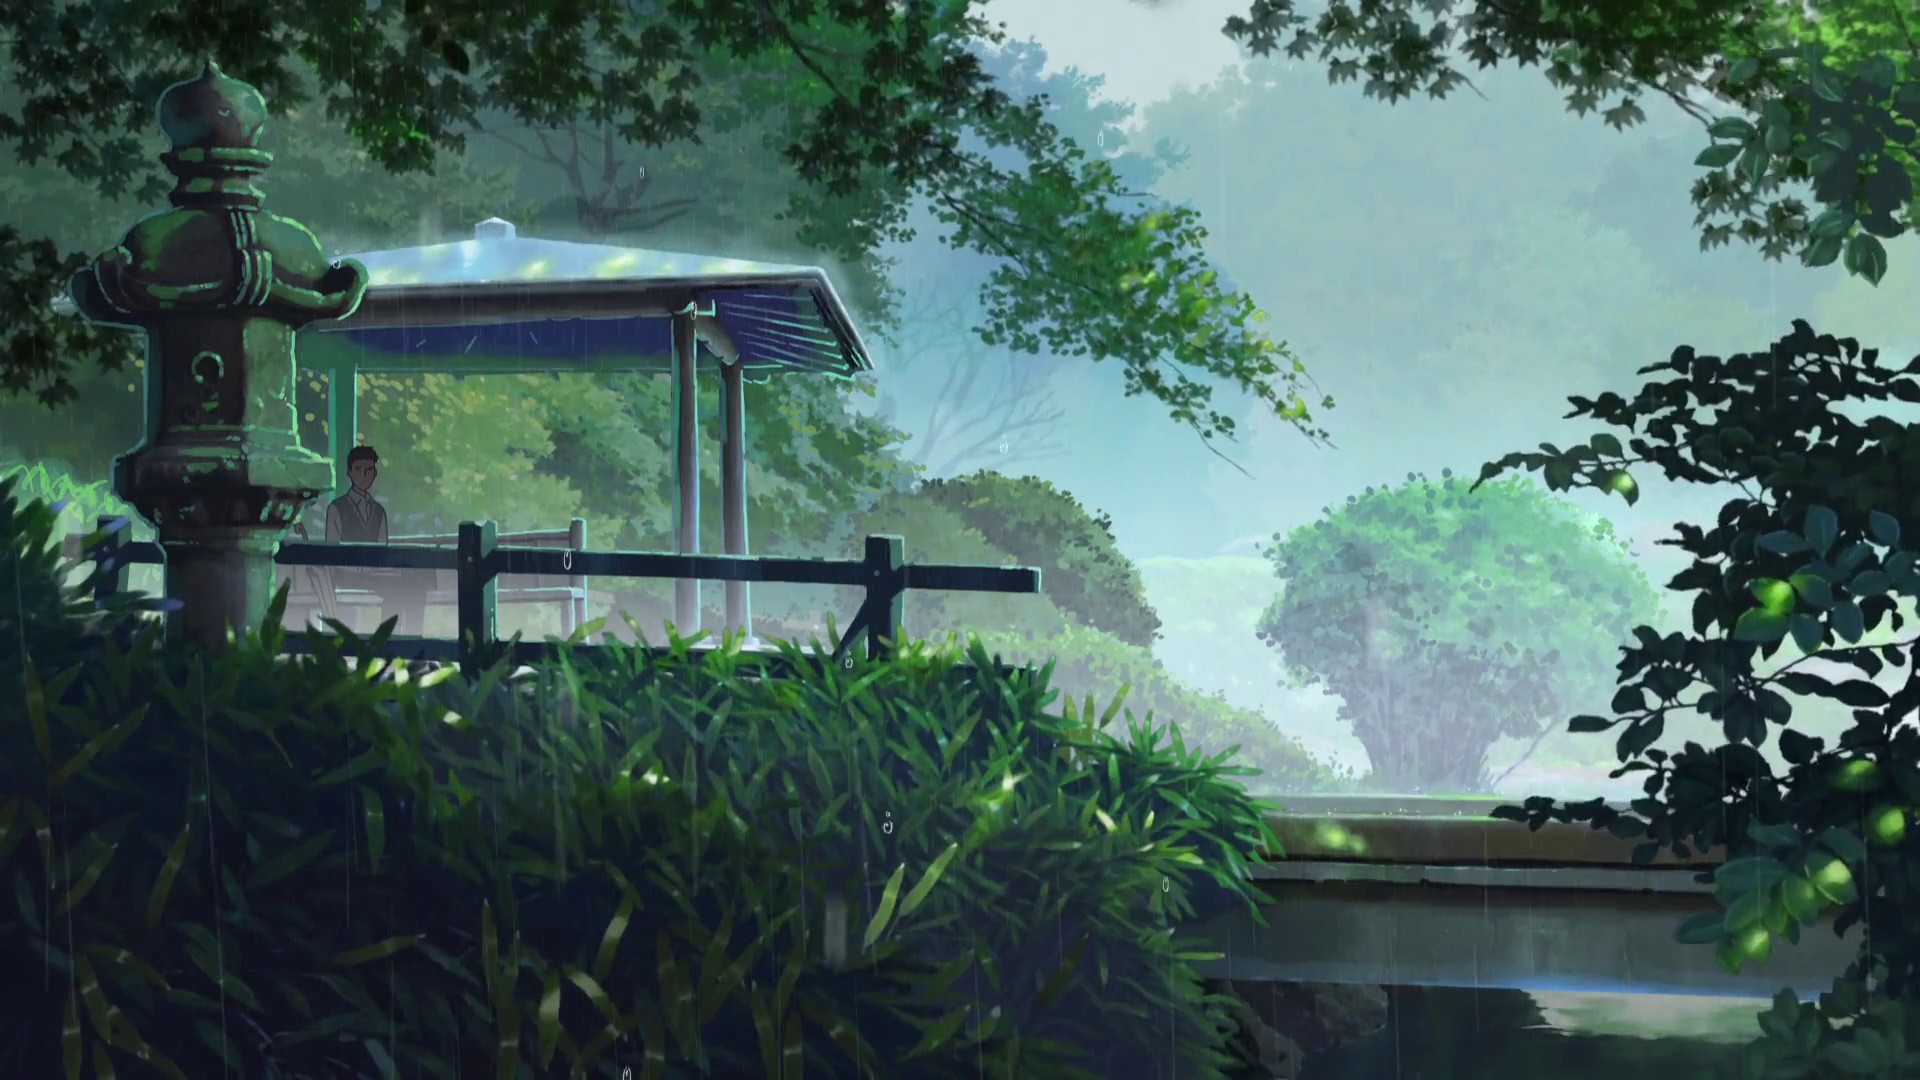 1920x1080 519 best raw scenery images on Pinterest | Anime scenery, Concept art and  Anime art